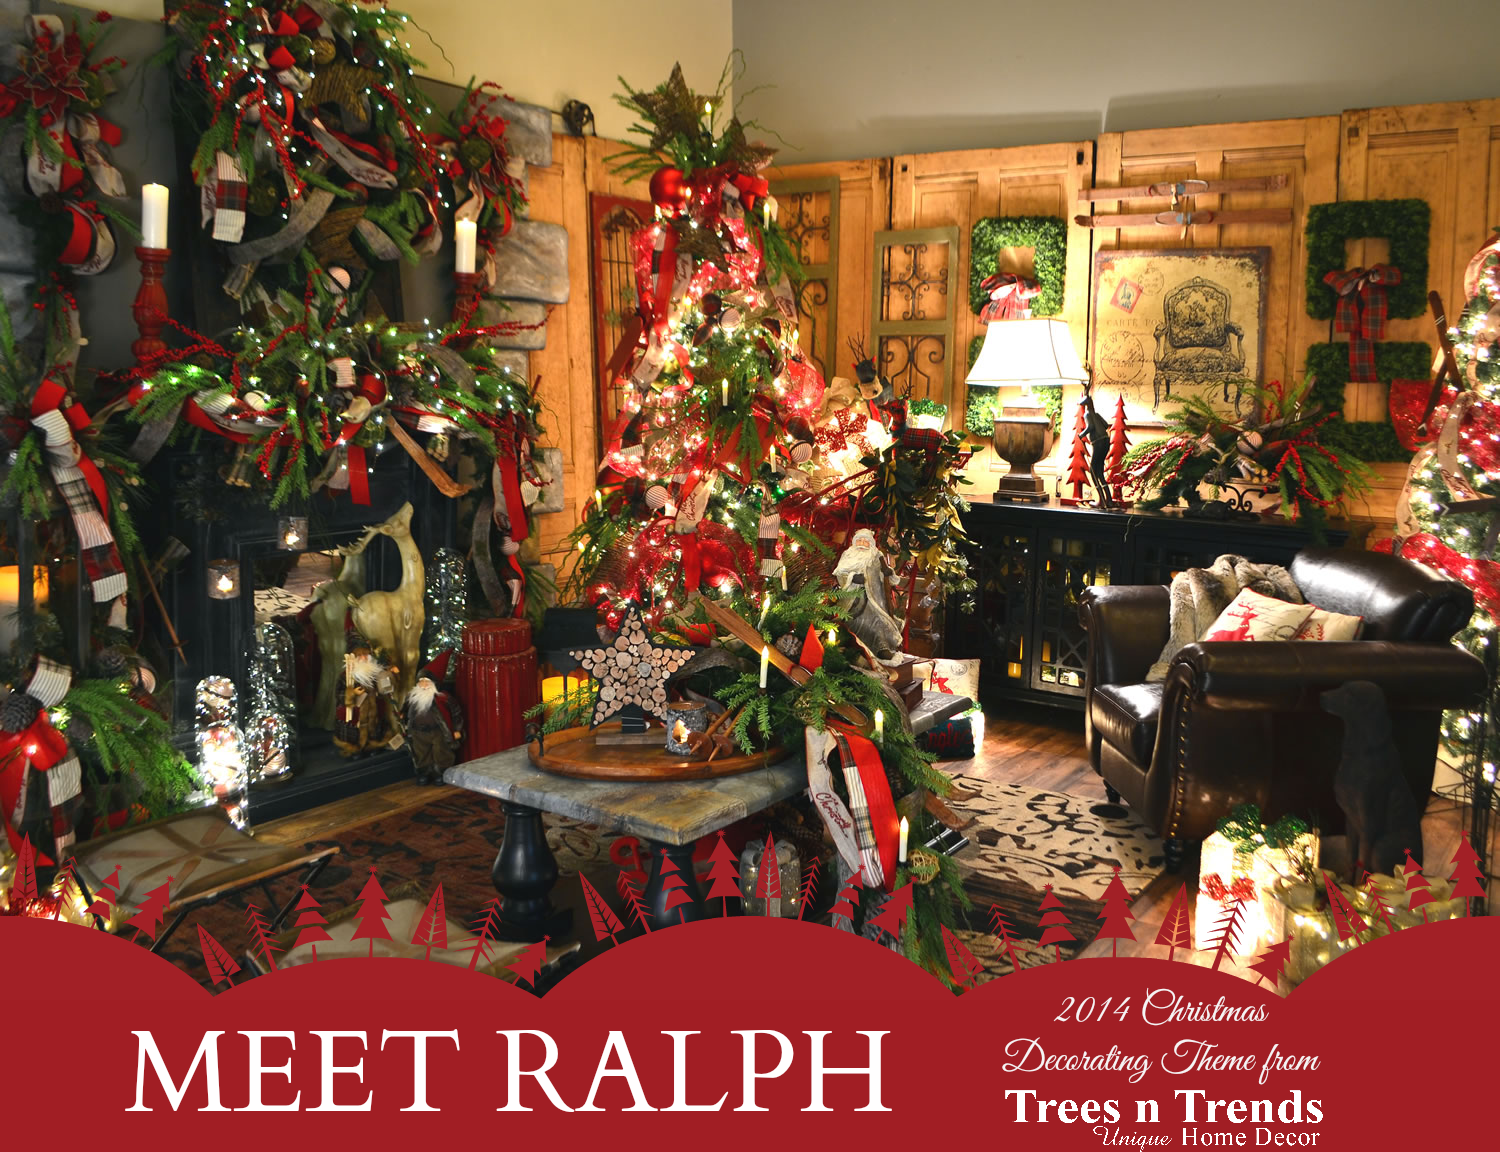 Trees n trends a christmas decorating theme for every Decorating for christmas 2014